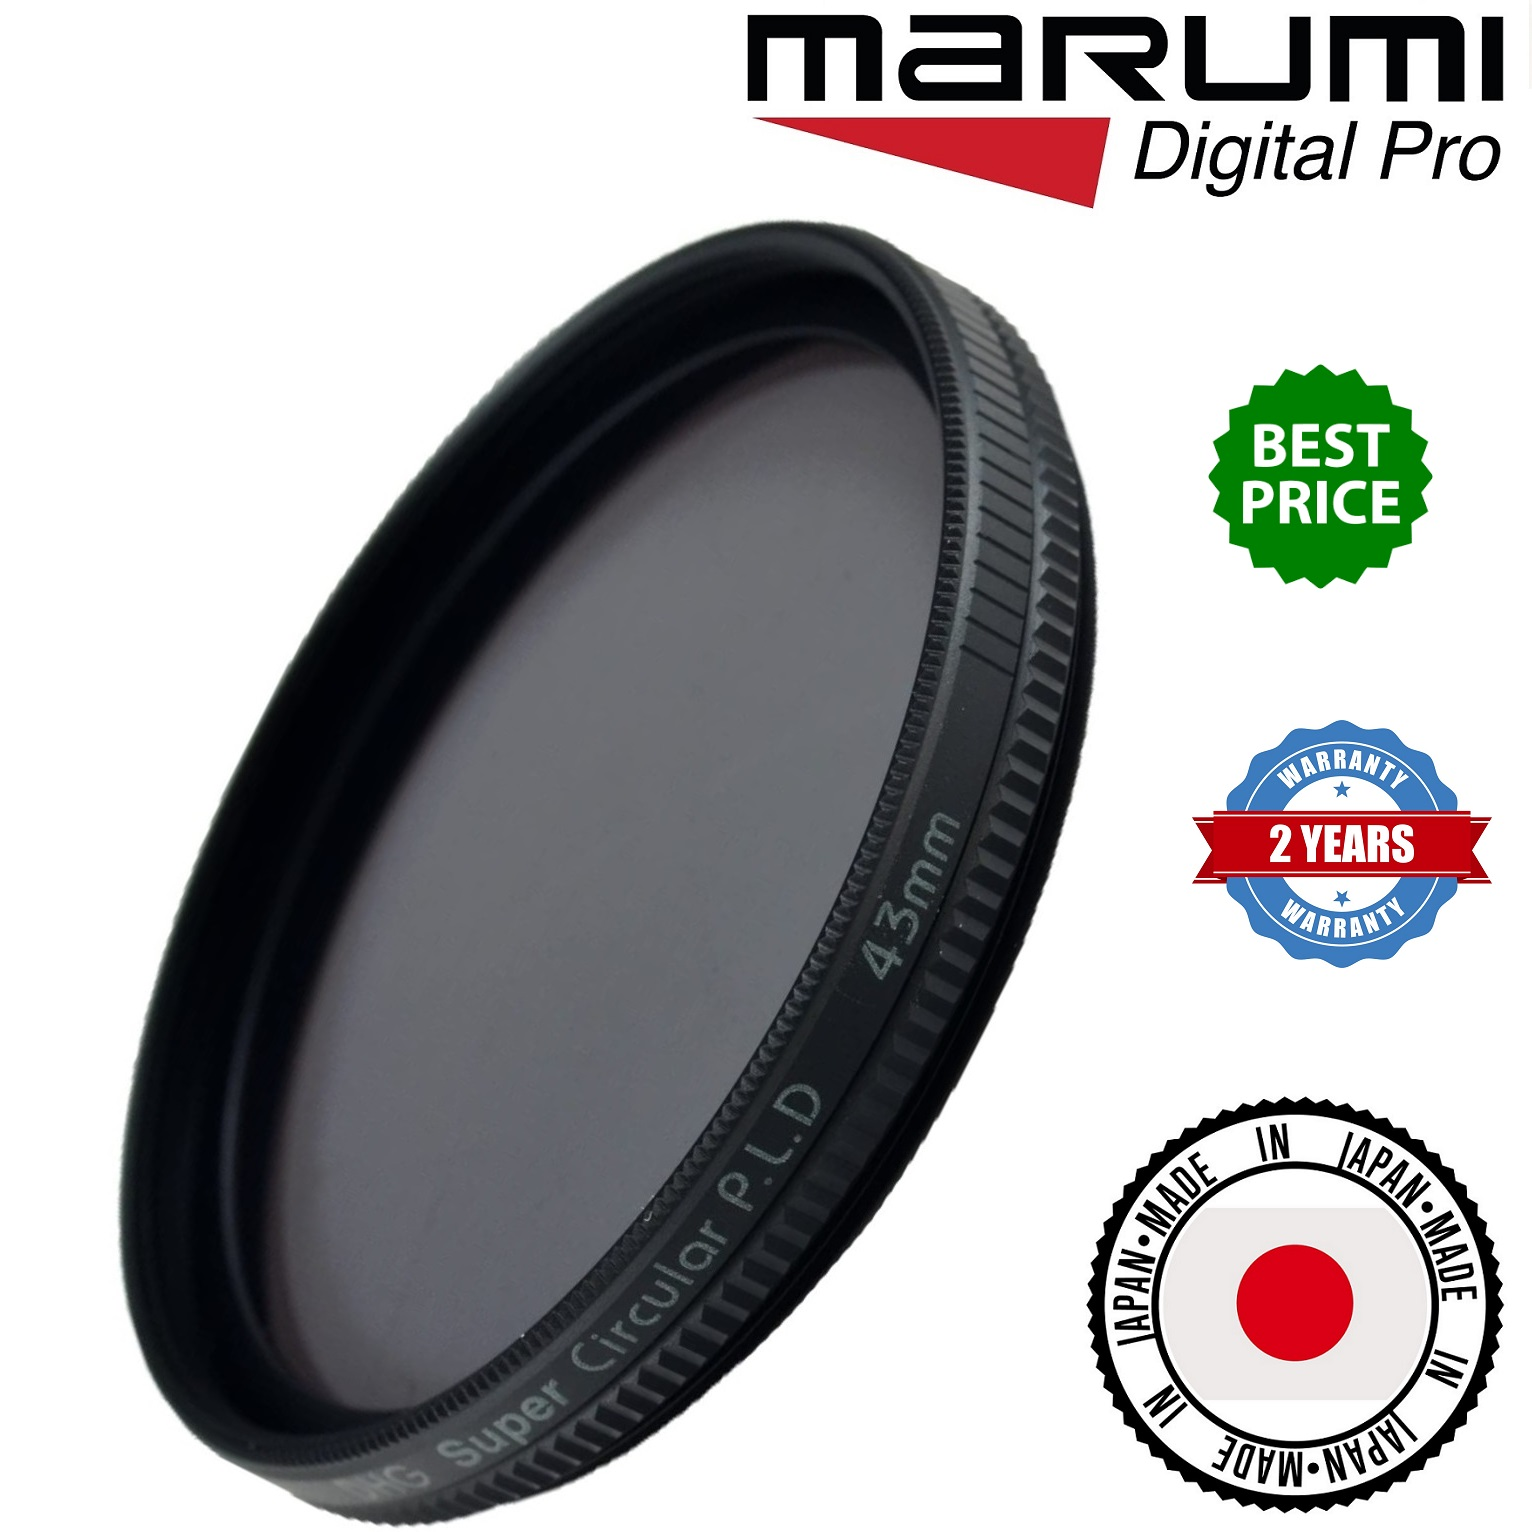 Marumi Super CPL 77mm DHG filter